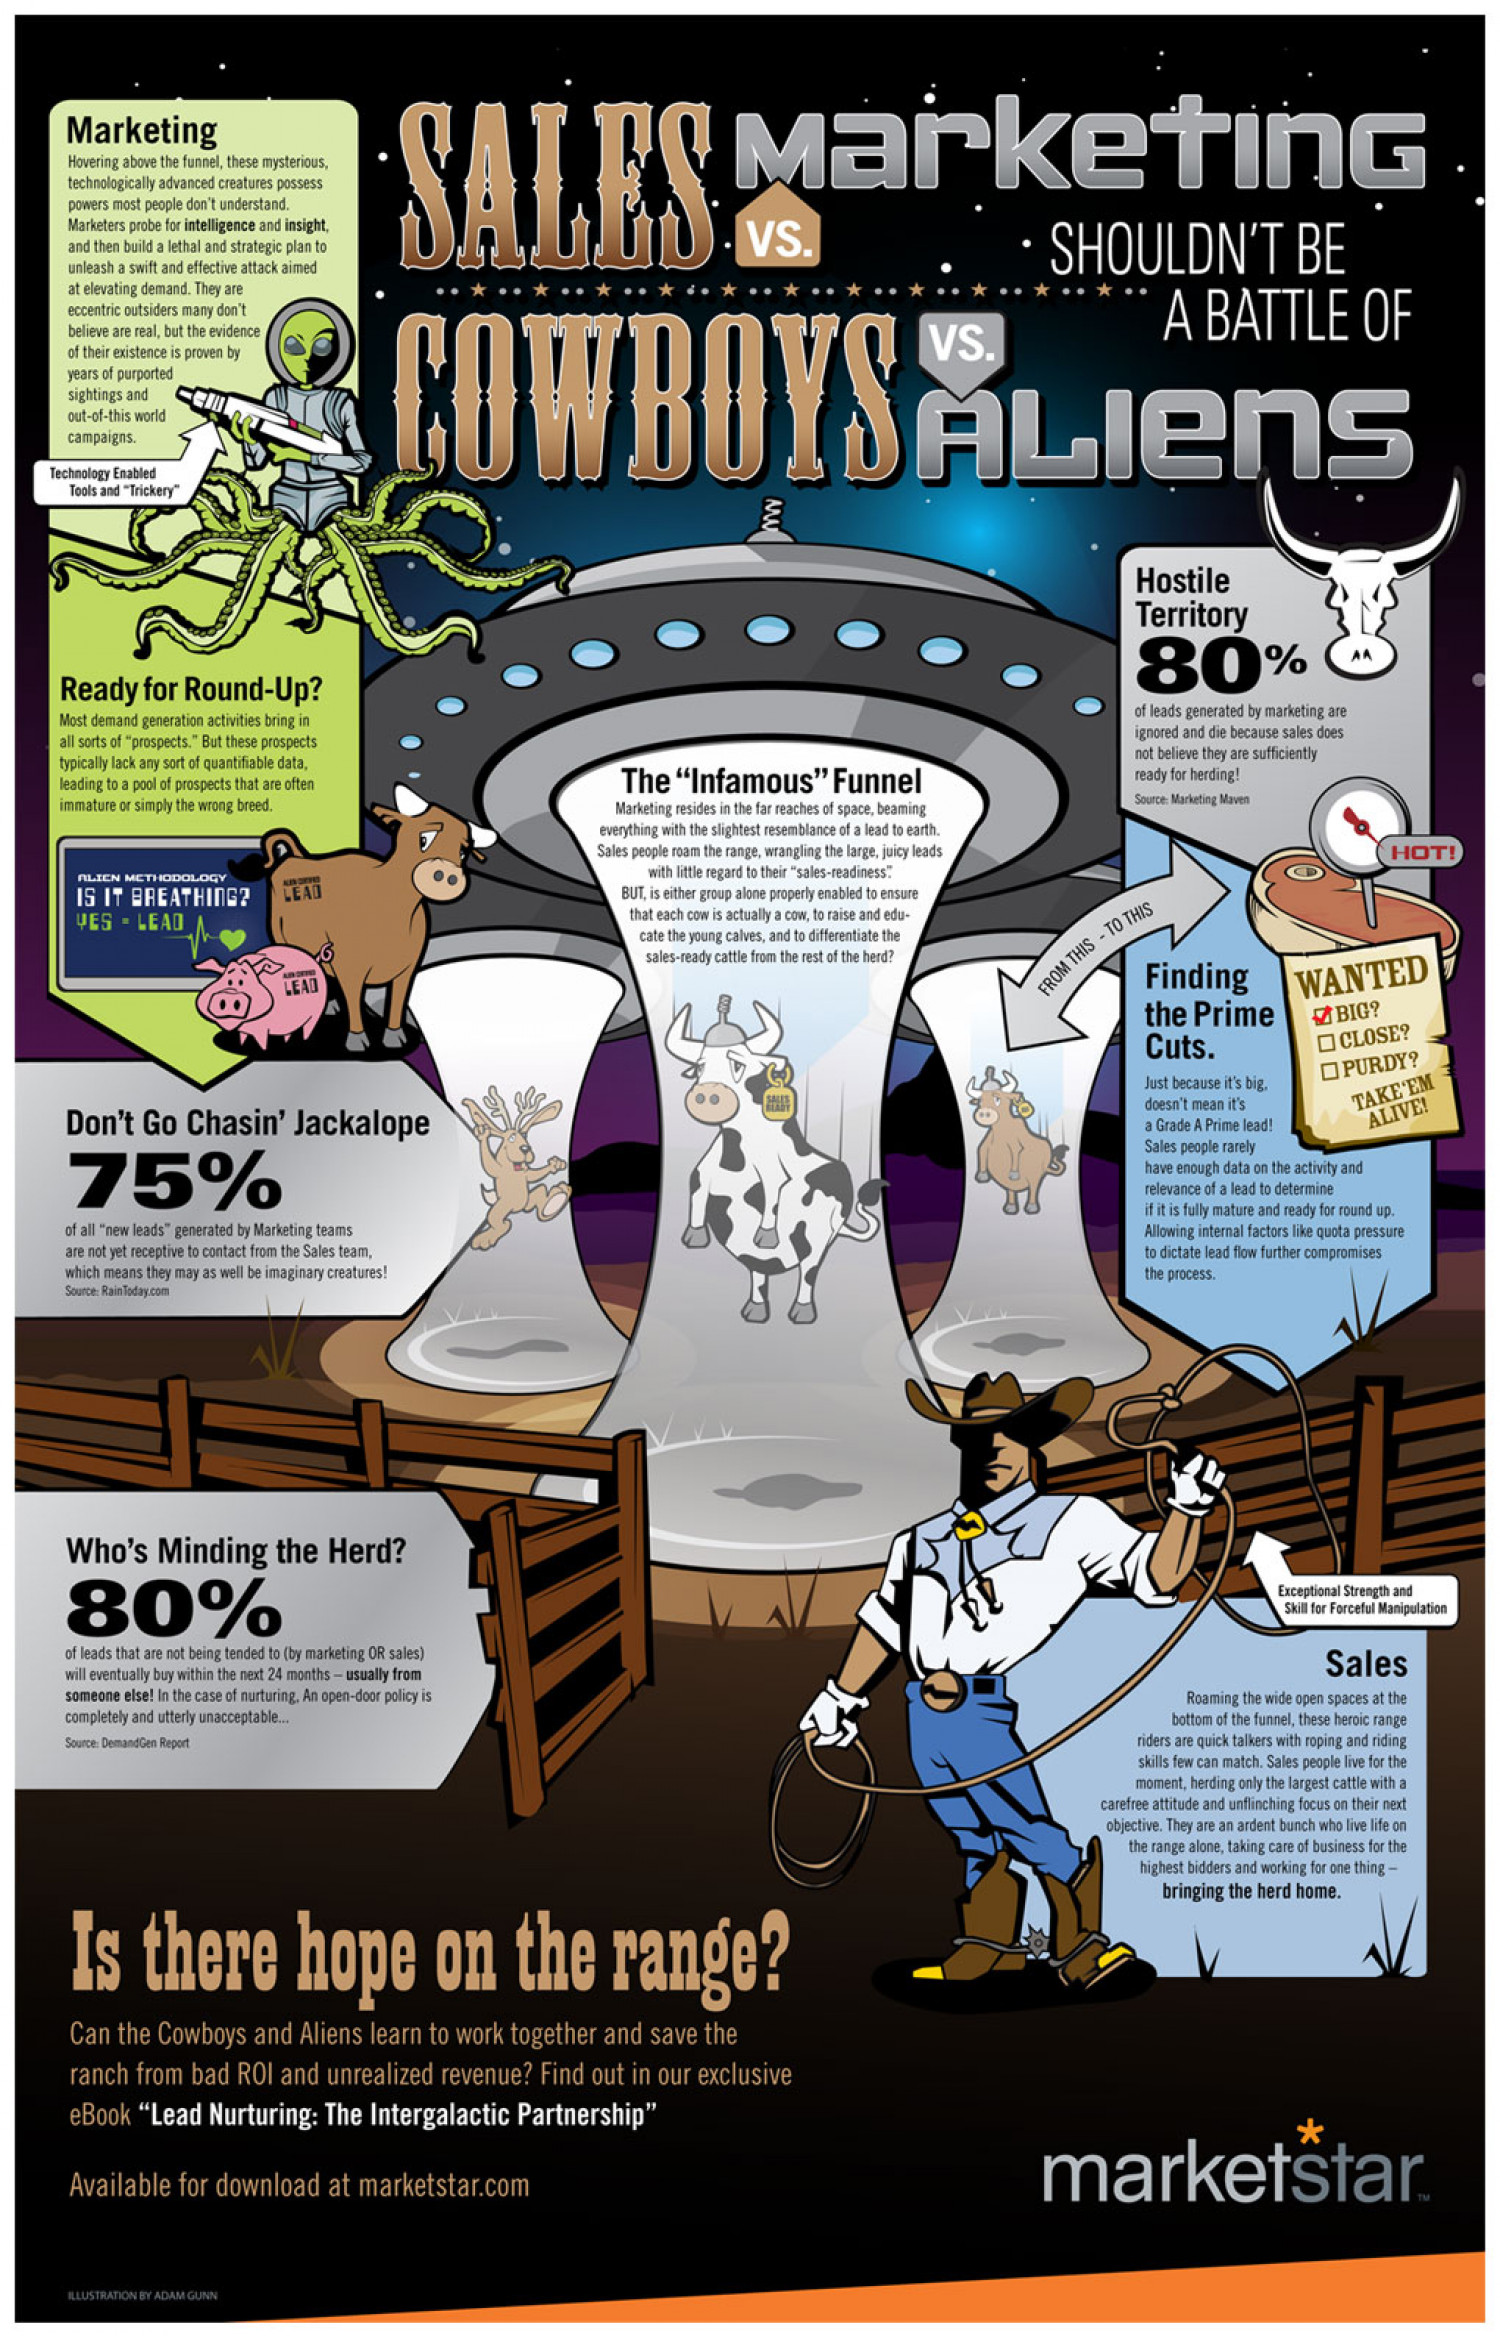 Sales vs. Marketing shouldn't be a battle of Cowboys vs. Aliens Infographic